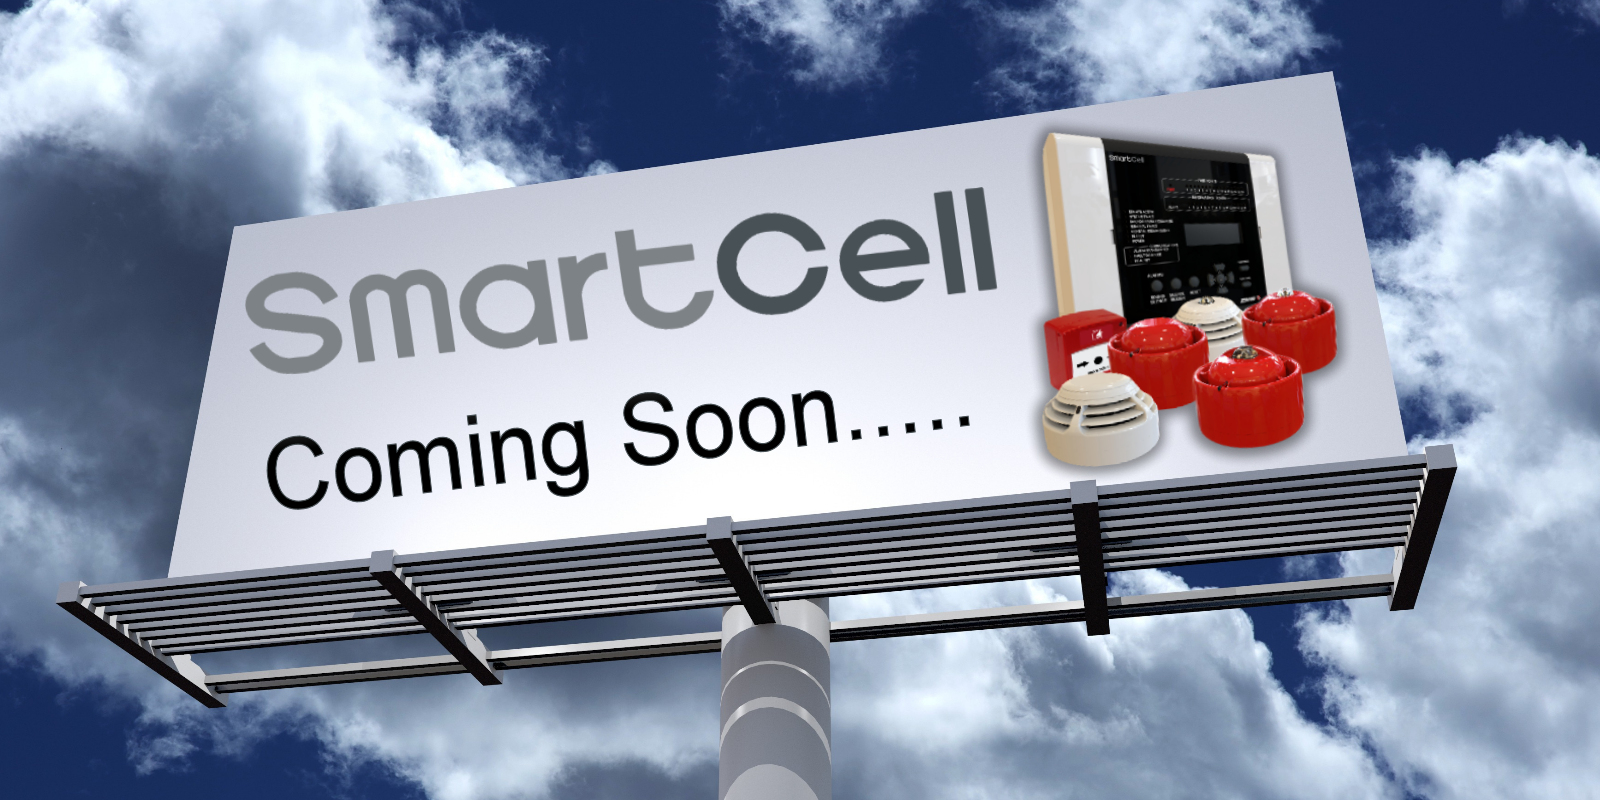 http://www.mysmartcell.com/index.php/smartcellhome/registermyinterest/